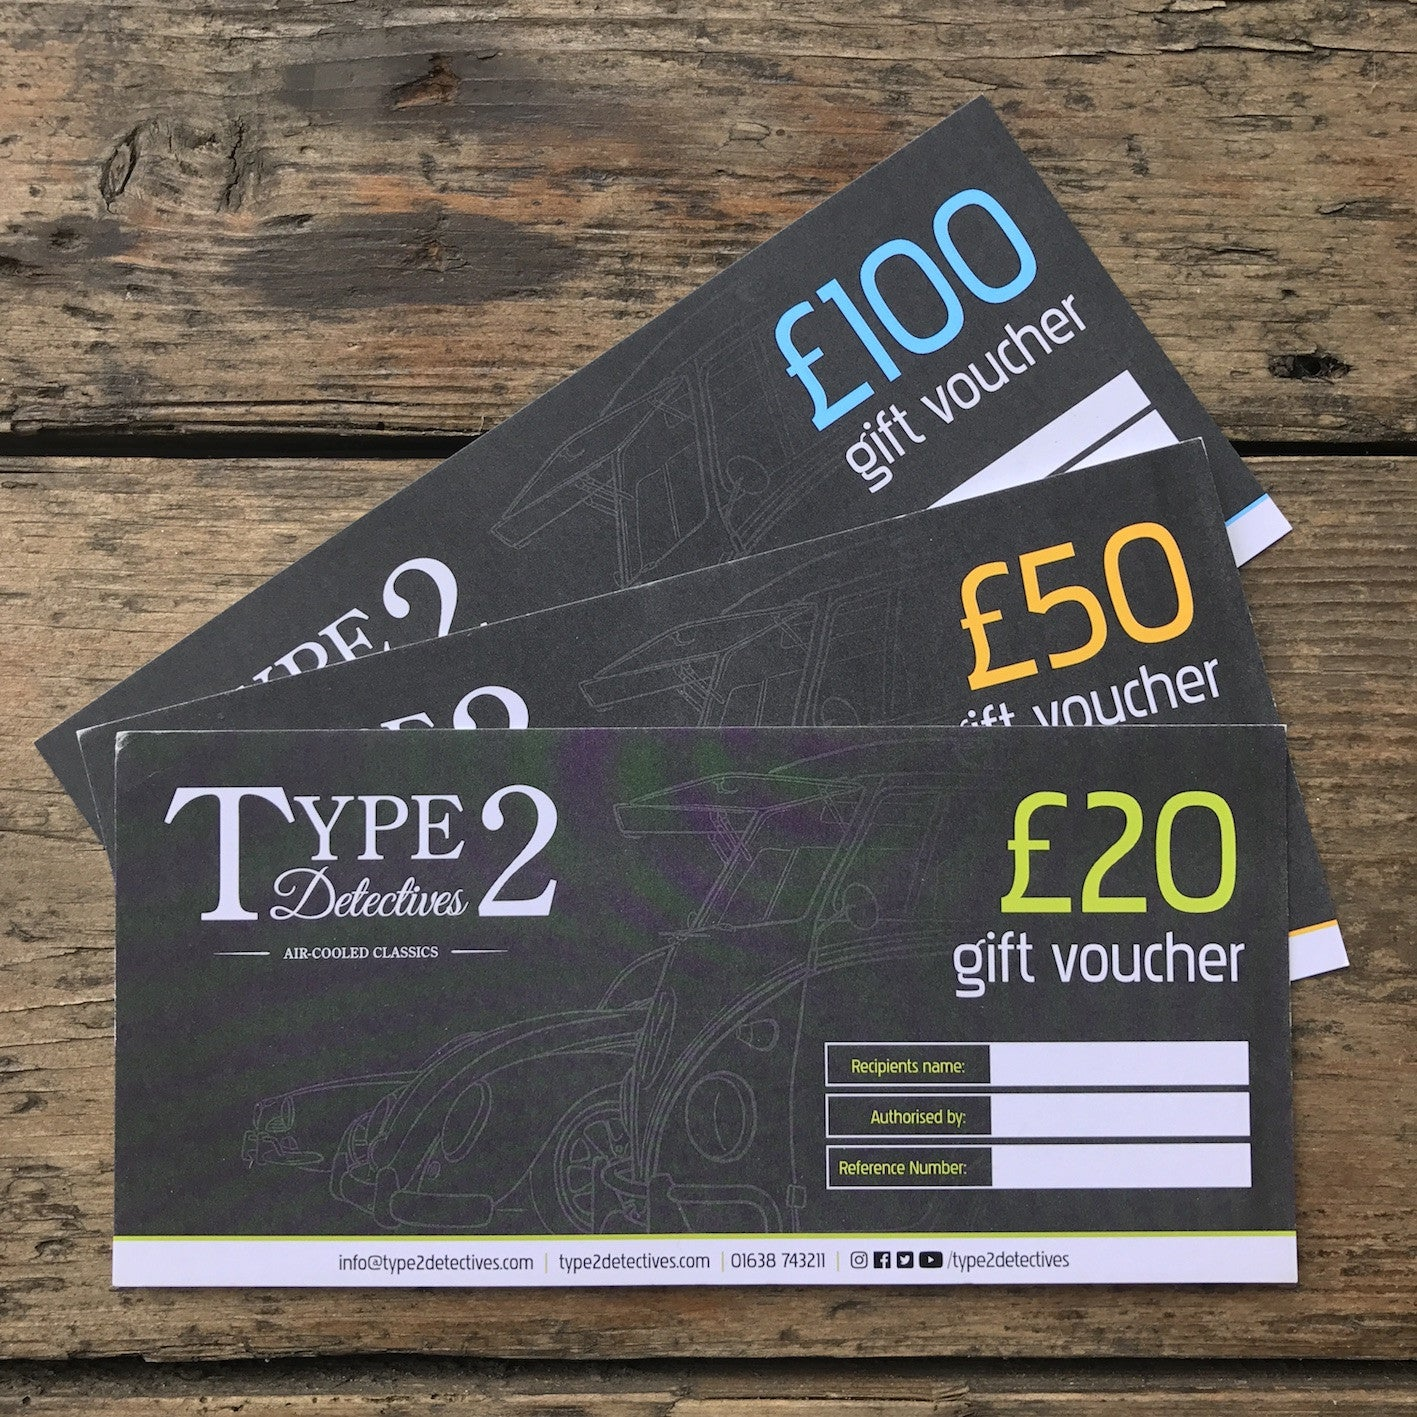 Type 2 Detectives Gift Vouchers